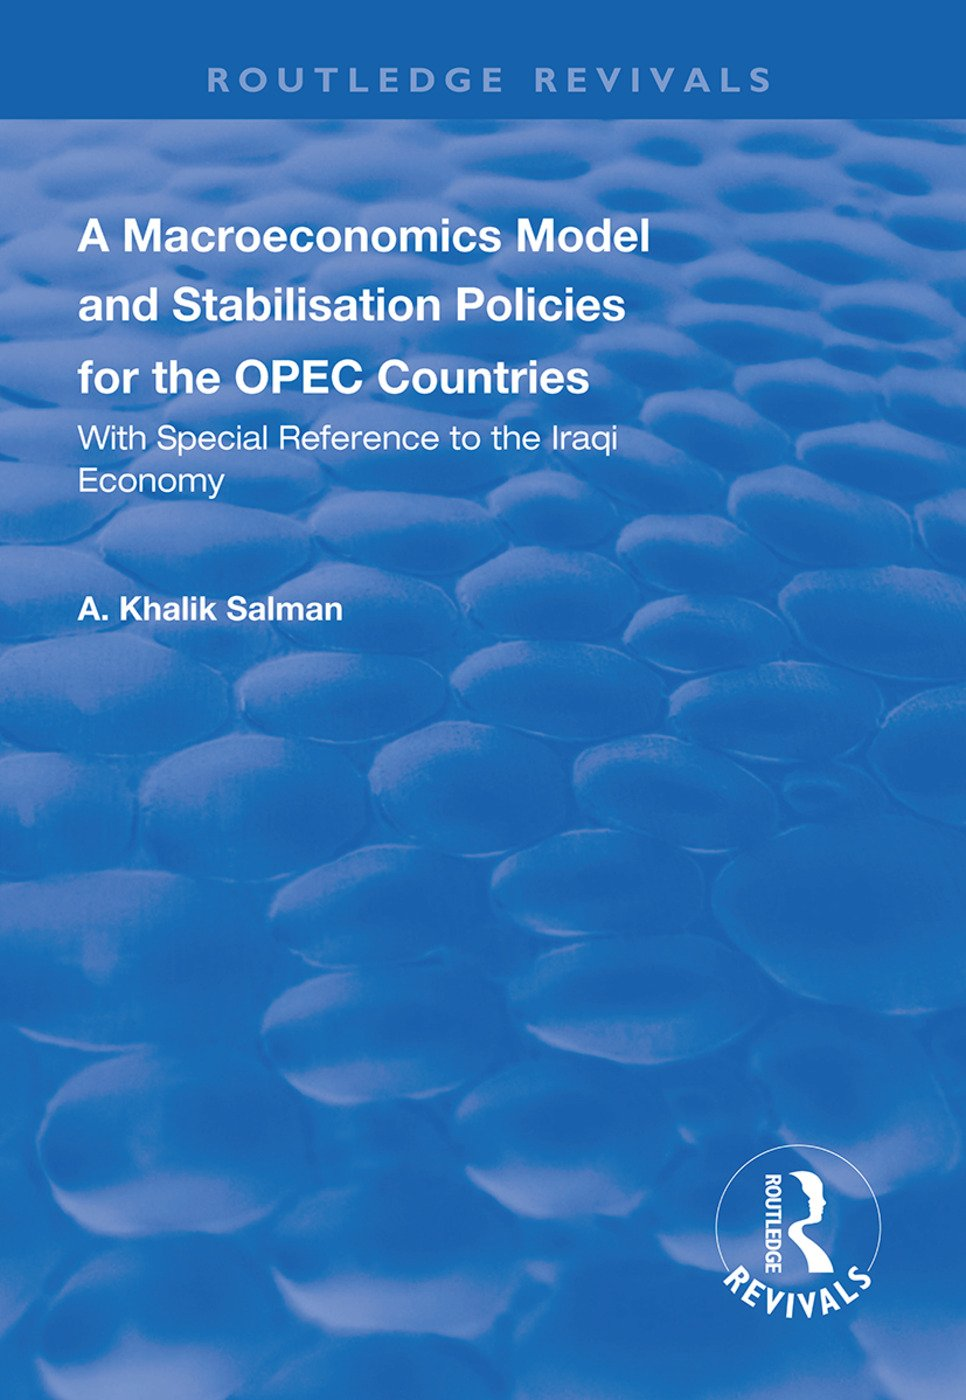 A Macroeconomics Model and Stabilisation Policies for the OPEC Countries: With Special Reference to the Iraqi Economy book cover